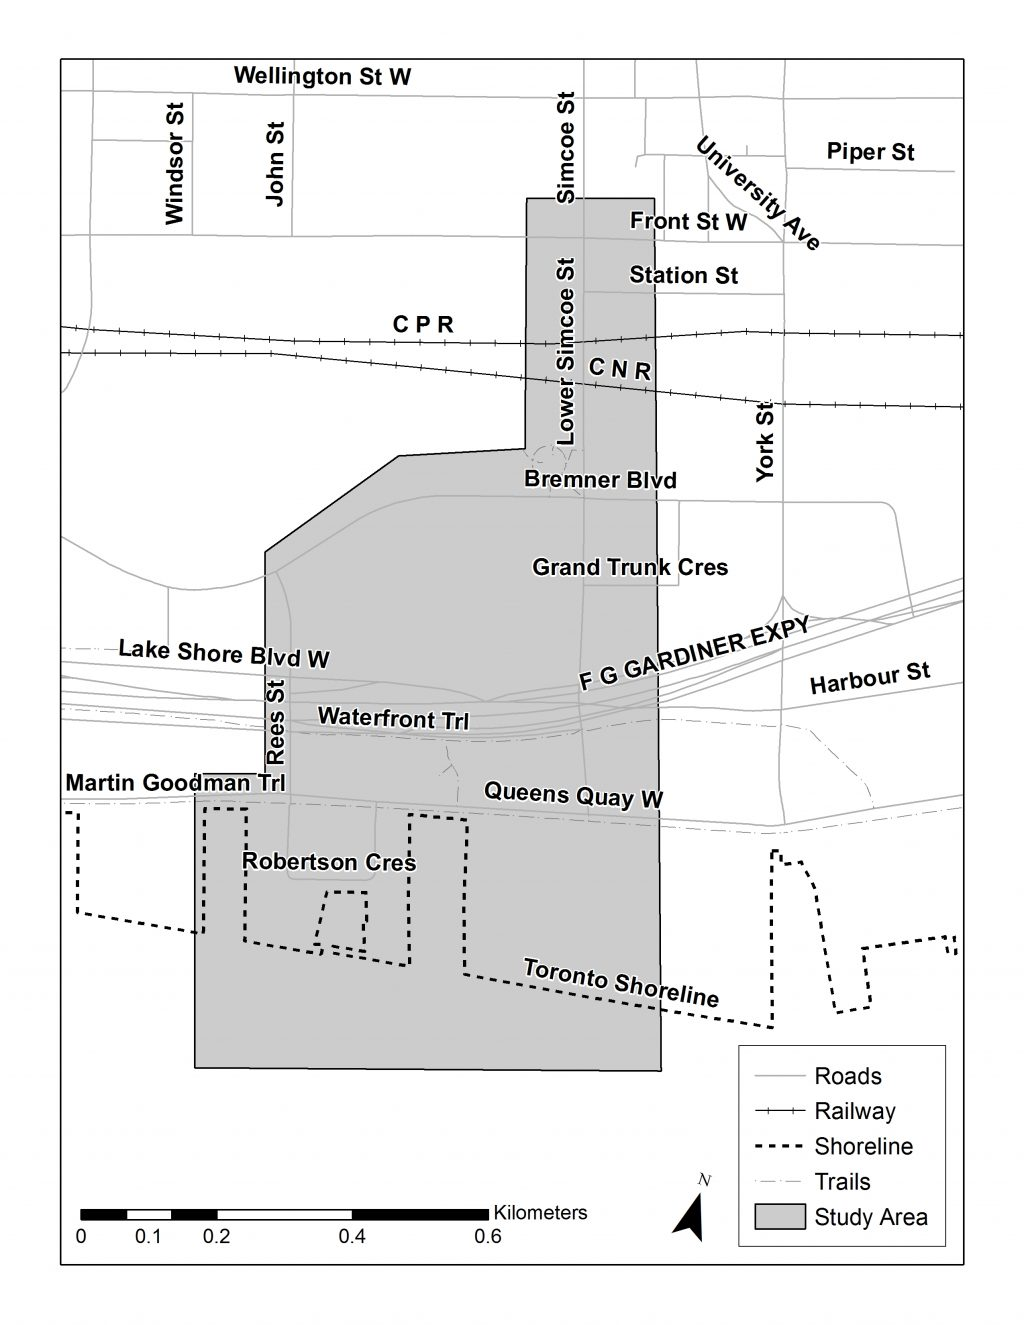 Study Area Map, please contact Mae Lee (mae.lee@toronto.ca, 416-392-8210) for assistance reading